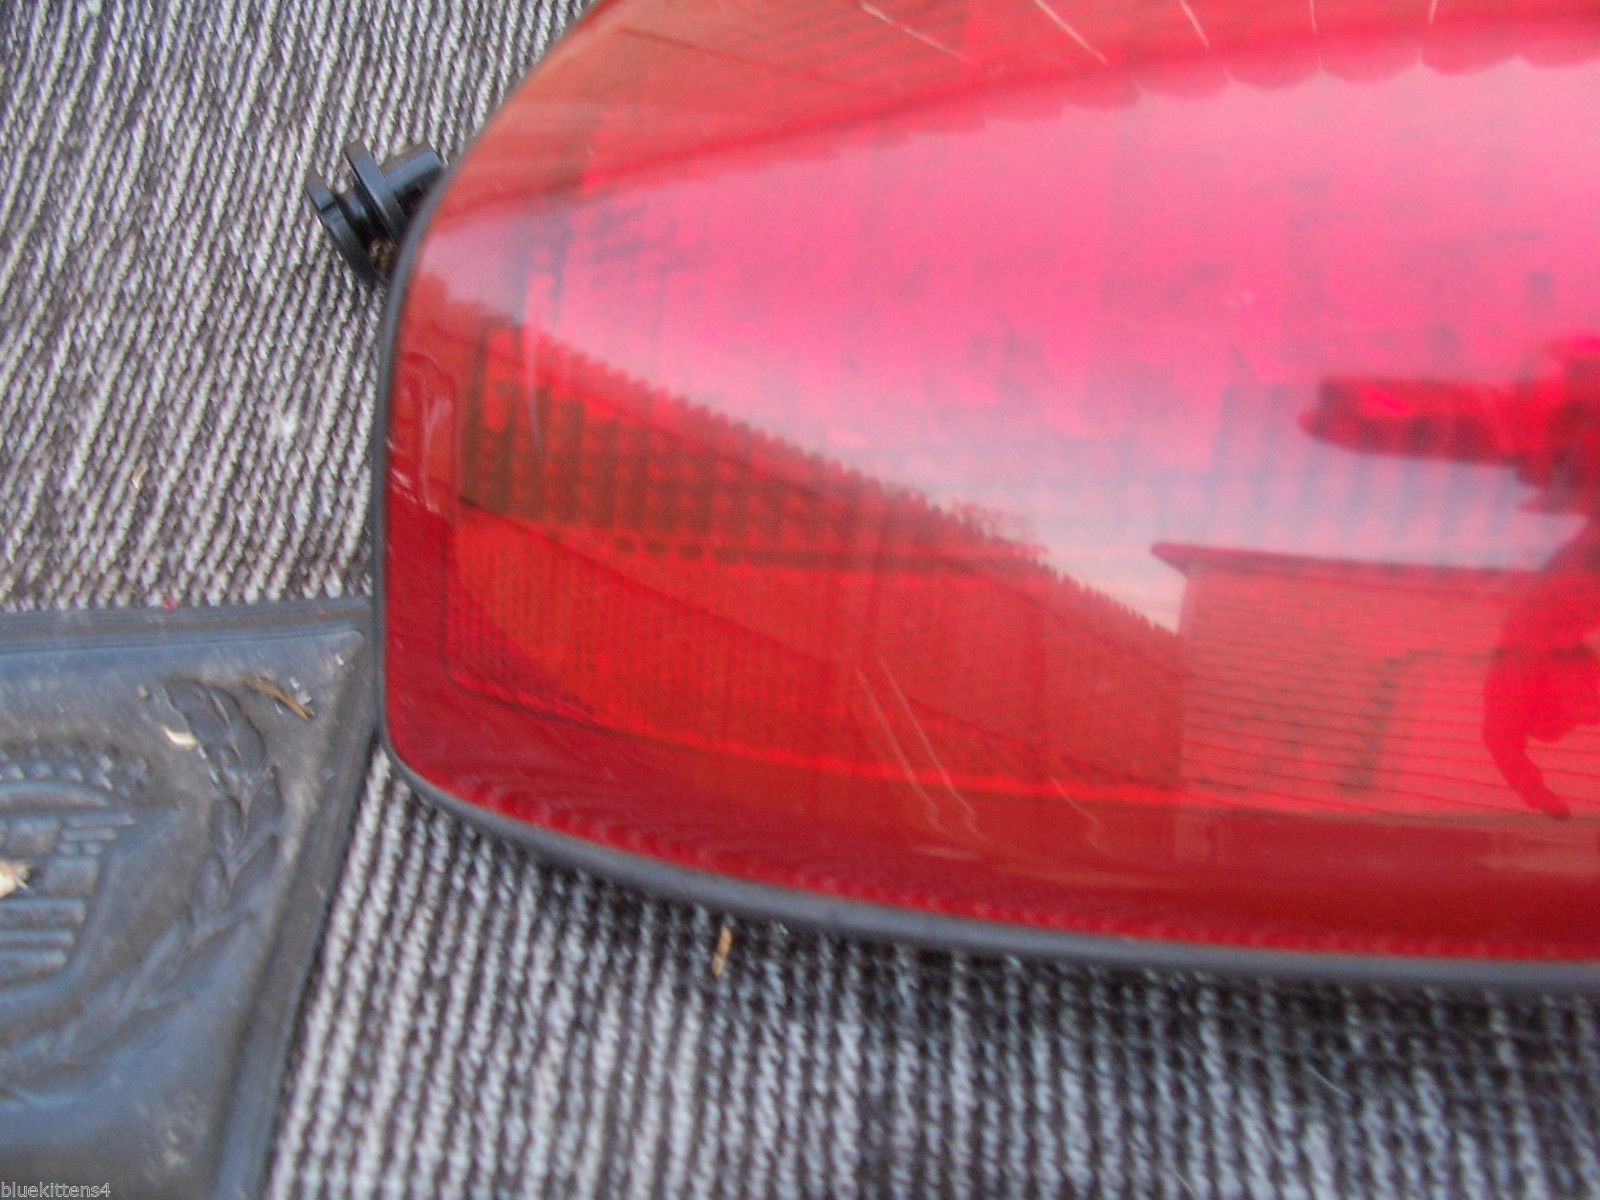 2000 2005 DHS DTS DEVILLE LEFT TAILLIGHT OEM USED CADILLAC GM PART NUMBER 278217 image 6